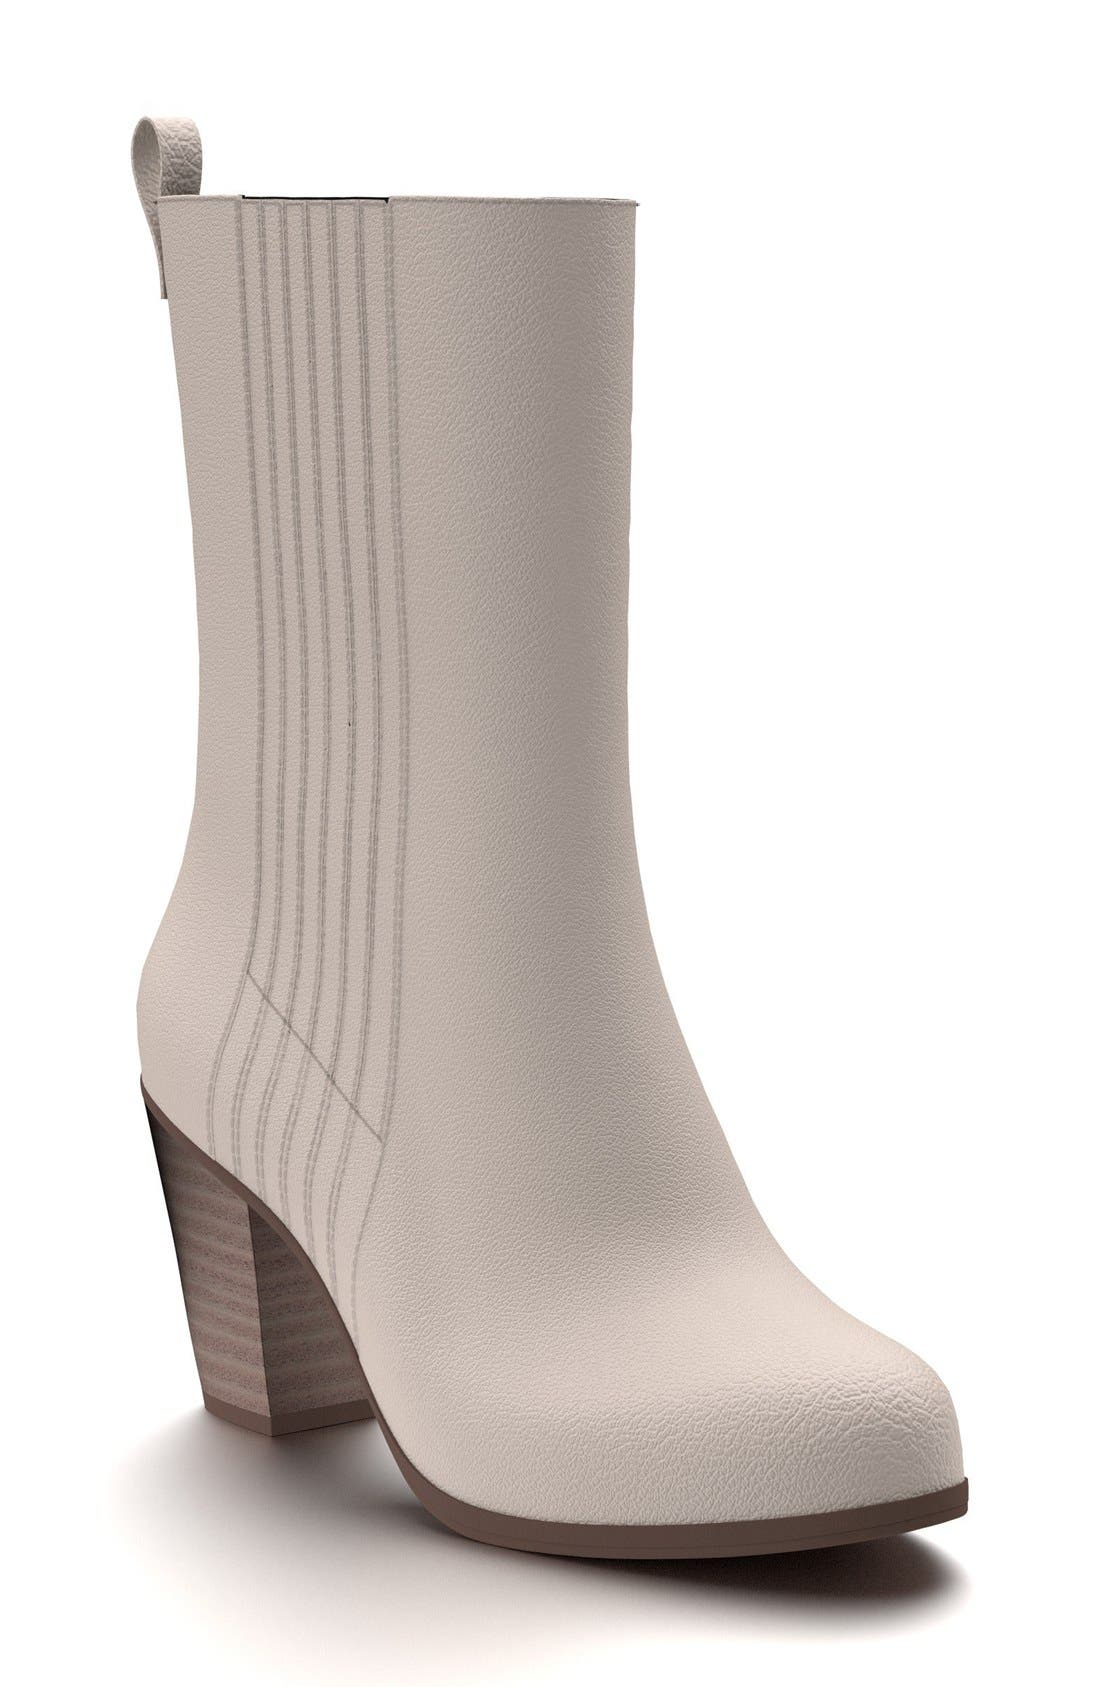 Alternate Image 1 Selected - Shoes of Prey Mid Calf Boot (Women)